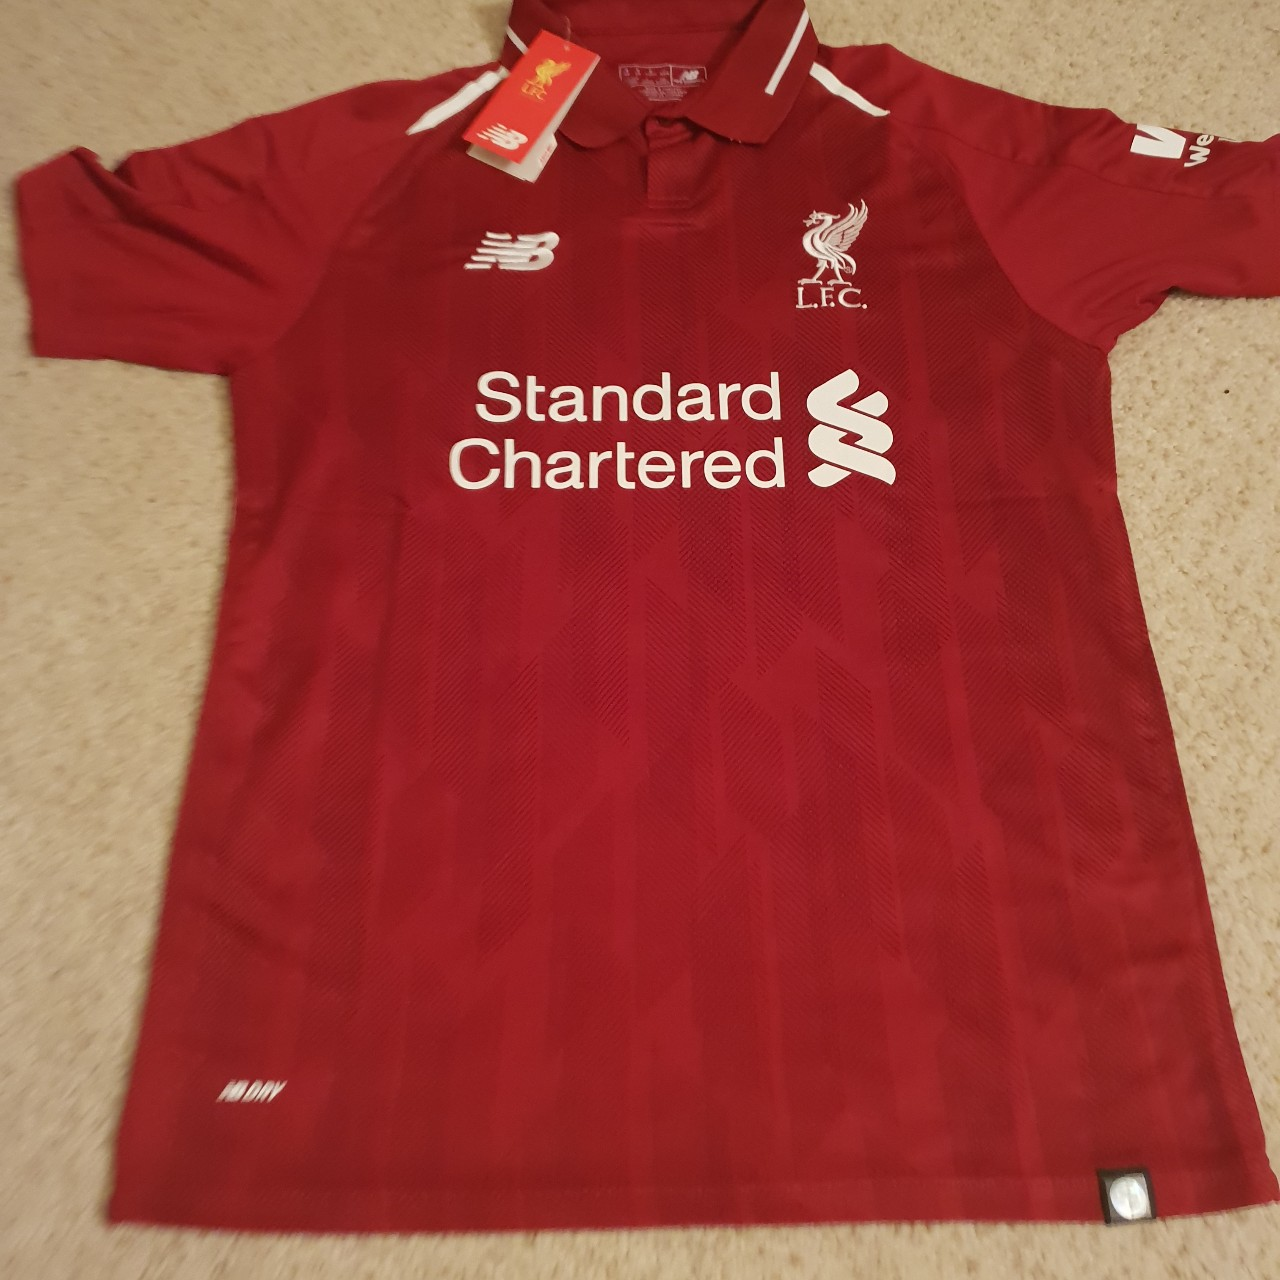 cheap for discount b6d78 7c501 Liverpool FC 18/19 Kit Size Medium With Tags. Fast... - Depop